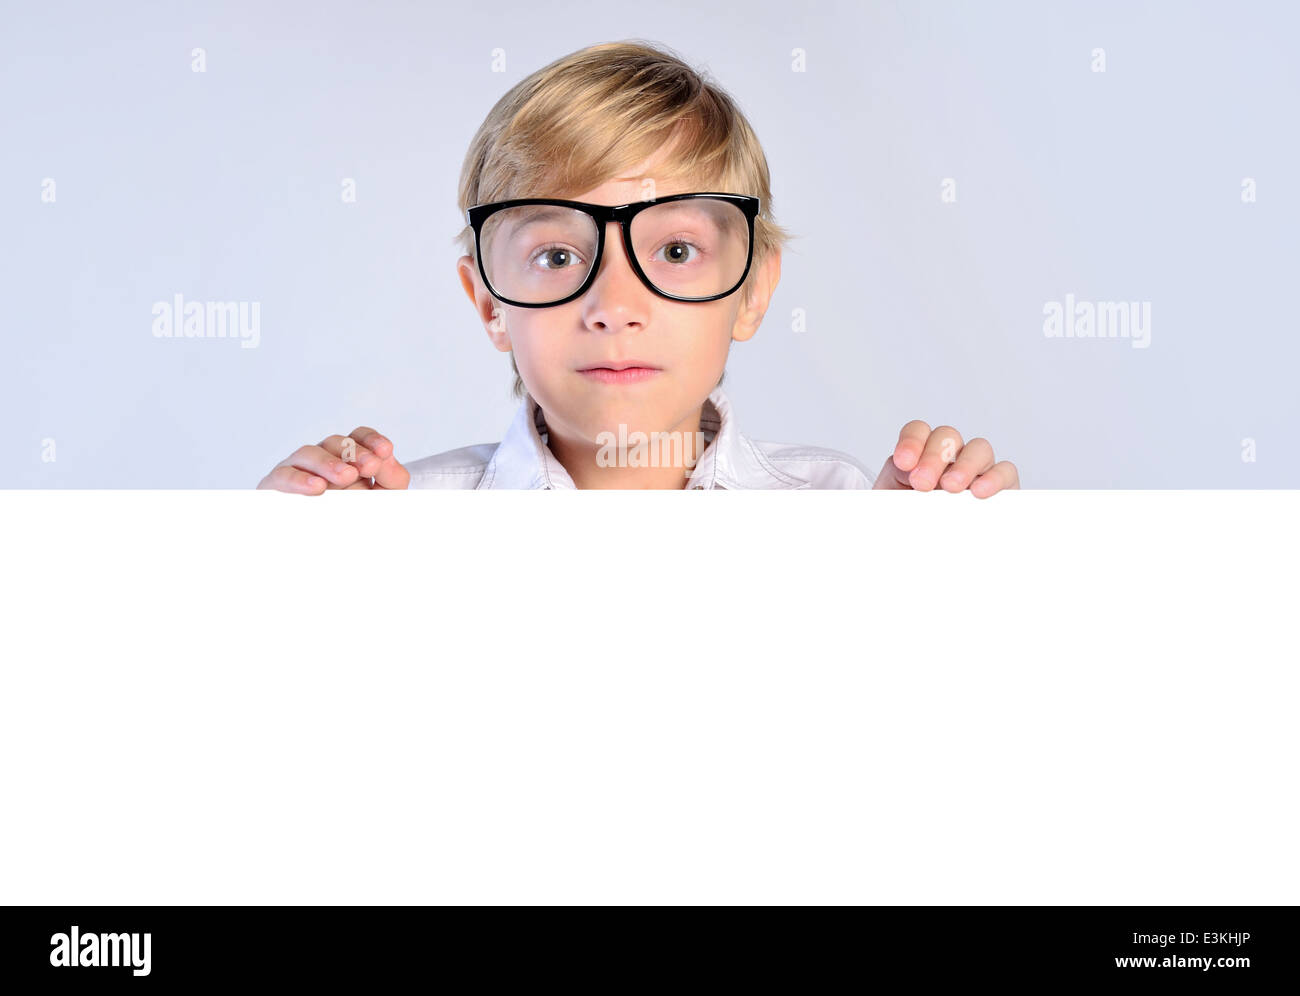 Young nerd boy leaning on blank banner - Stock Image